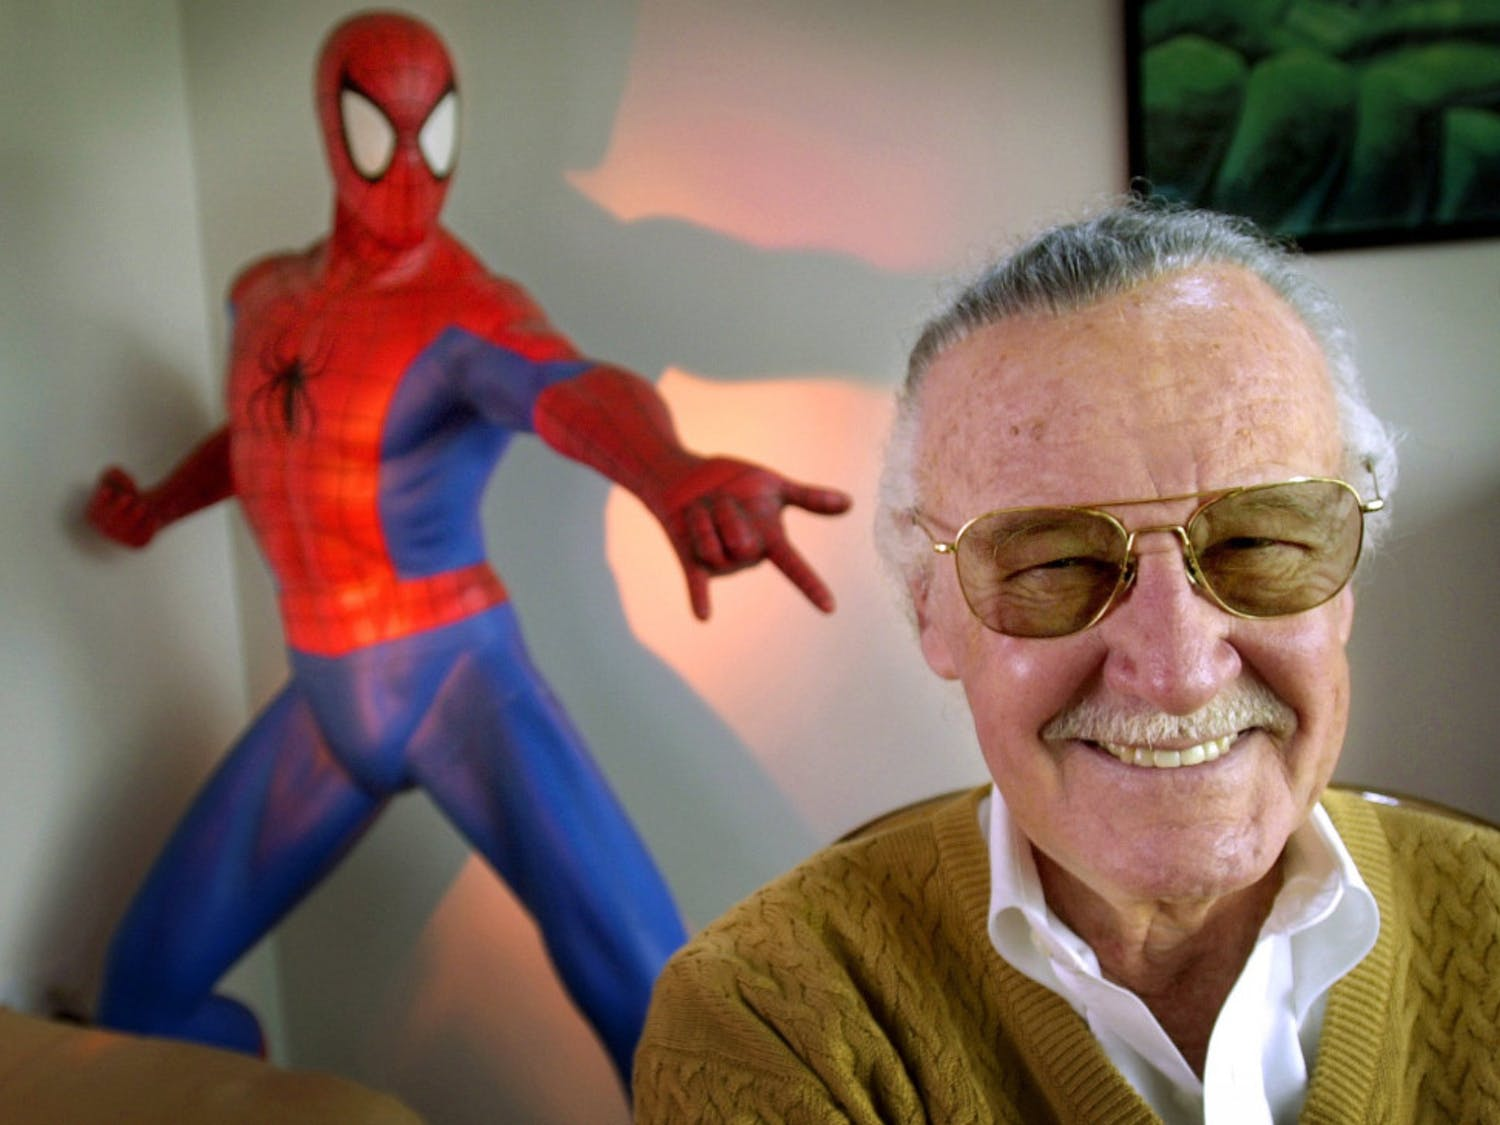 UF students remember the comic book legend Stan Lee